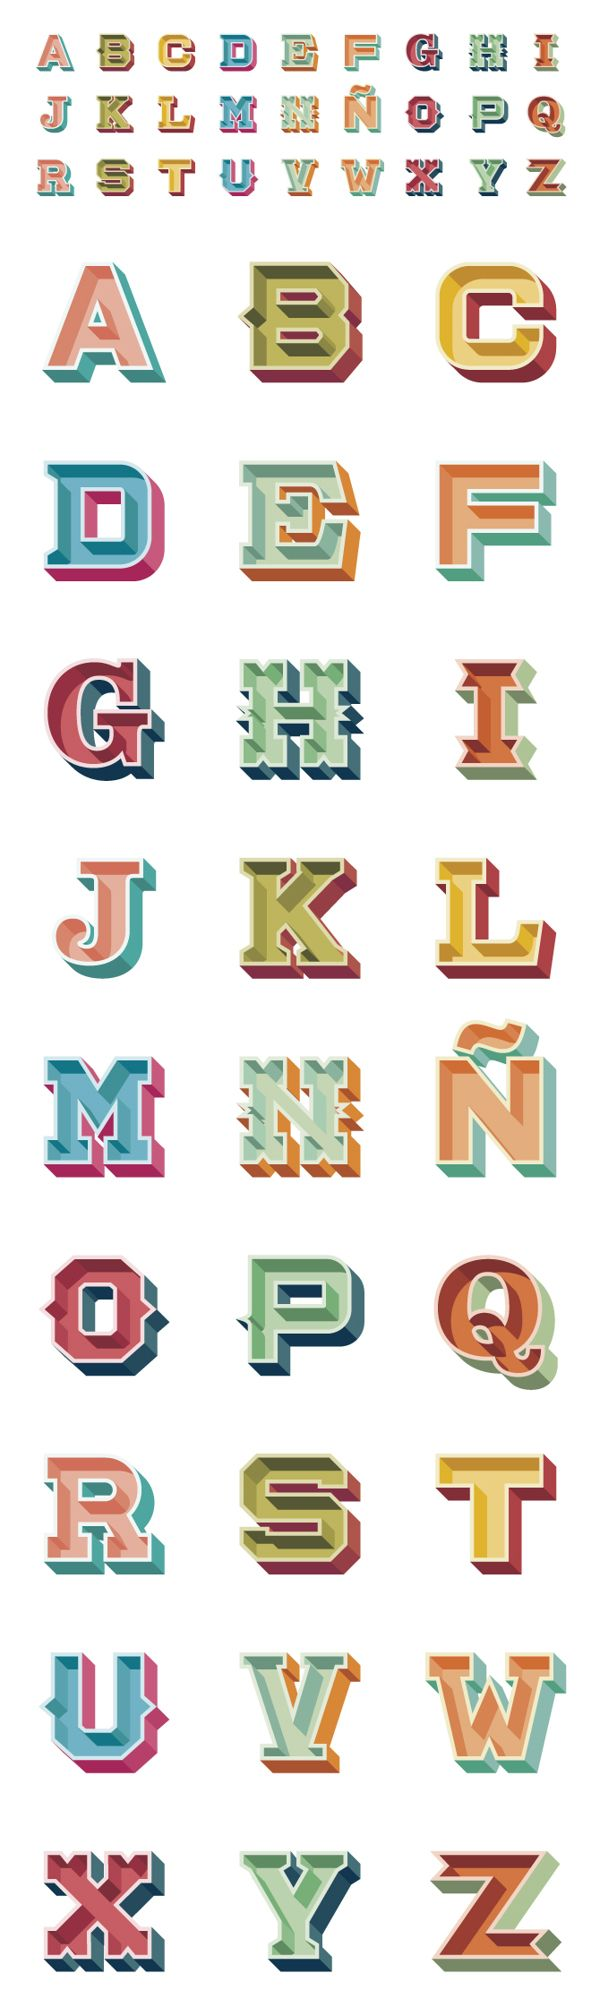 Type by David Sierra